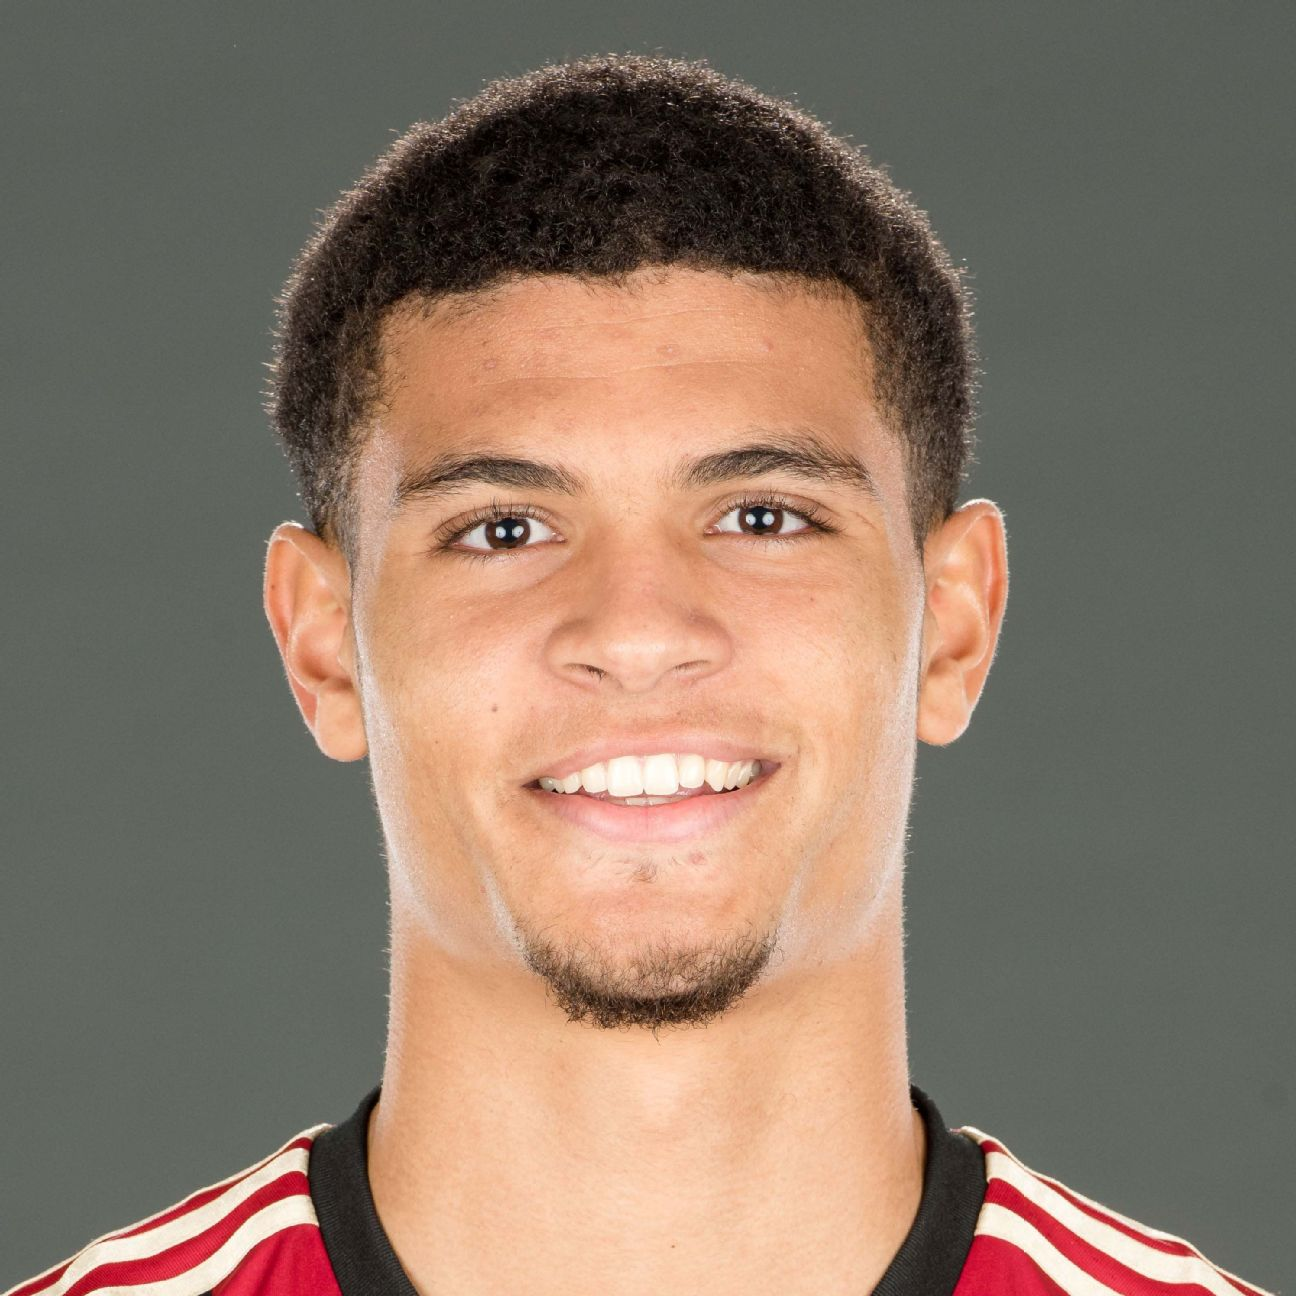 a3480a487337 Miles Robinson (second pick, Atlanta United FC): Going to New England  Revolution games when I was a young kid with my youth soccer teams.